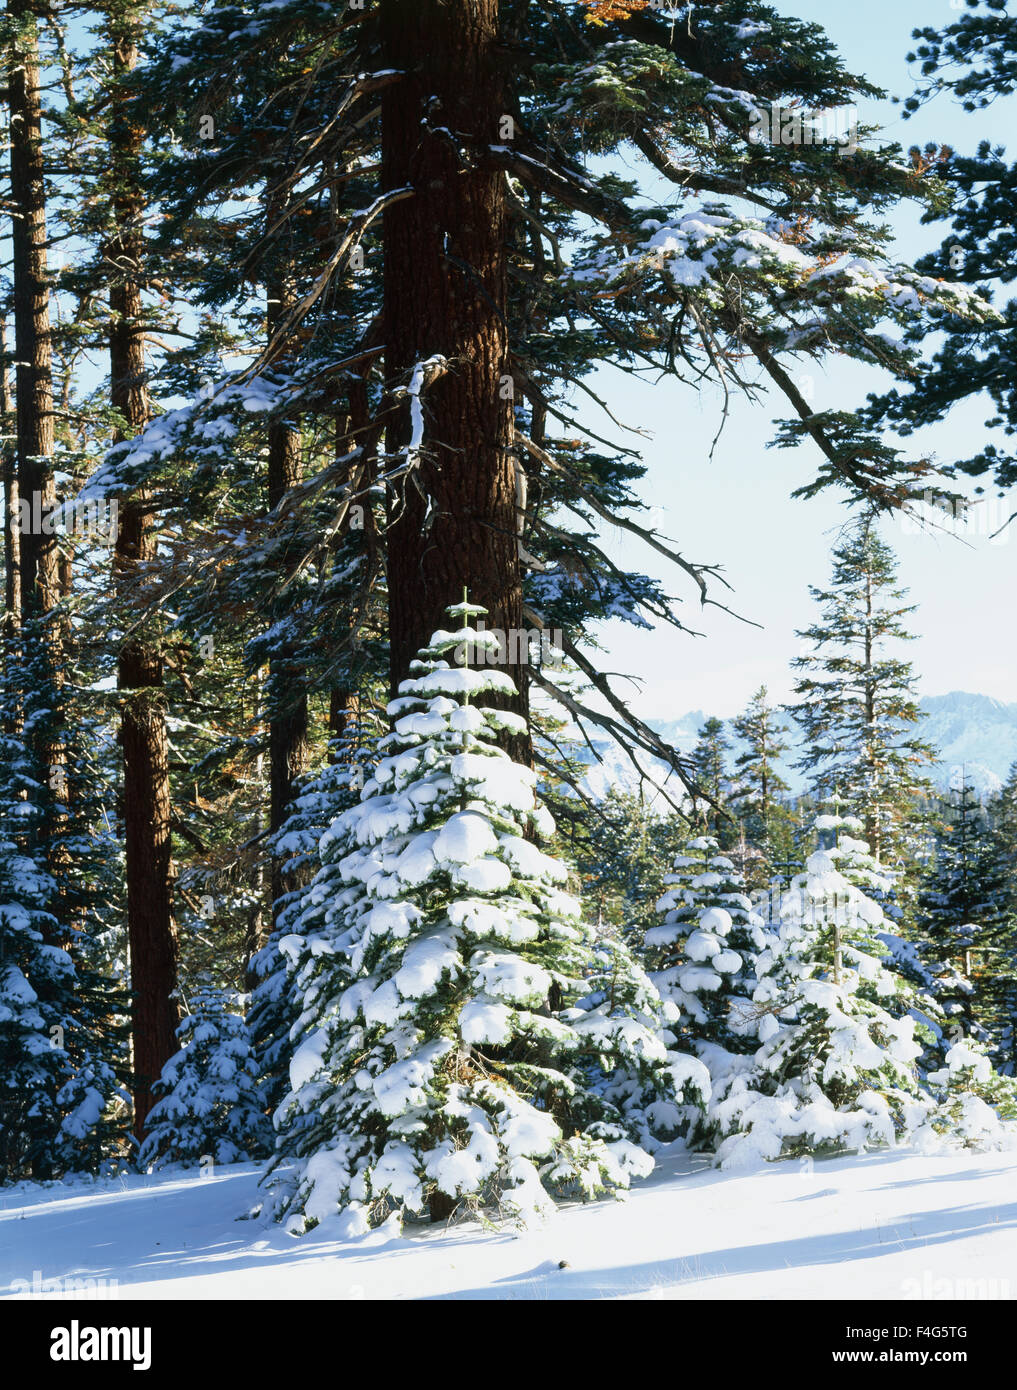 California, Sierra Nevada Mountains, Inyo National Forest, snow-covered Red Fir Trees (Abies magnifica) trees in - Stock Image